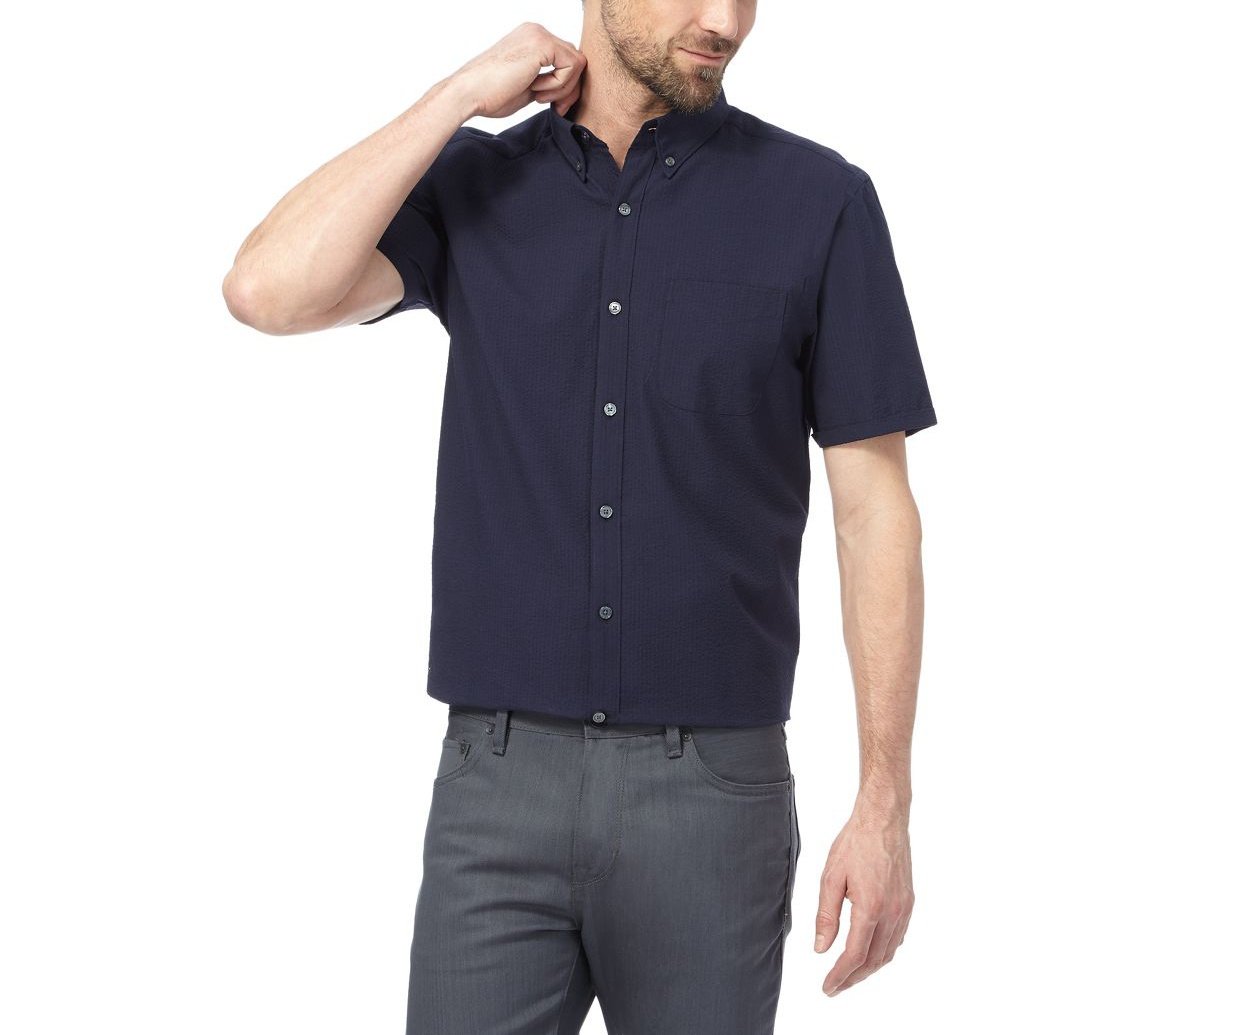 J by Jasper Conran Navy Big and tall navy seersucker shirt